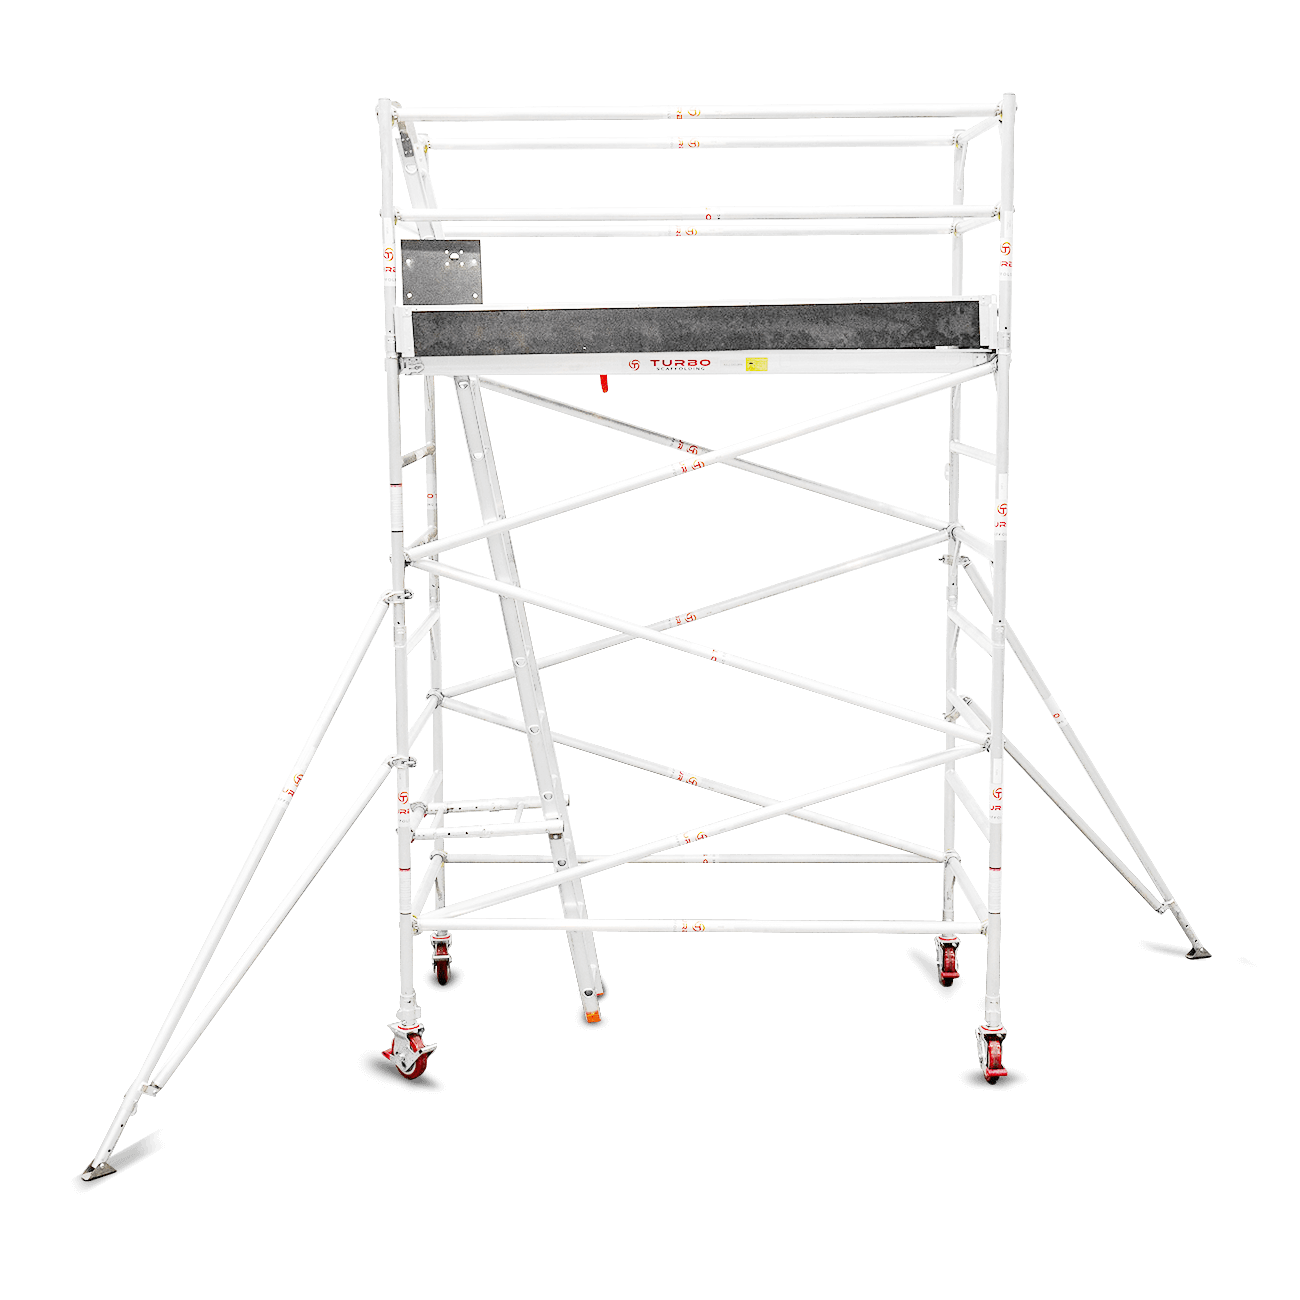 3.1m – 3.4m Wide Aluminium Mobile Scaffold Tower (Standing Height)